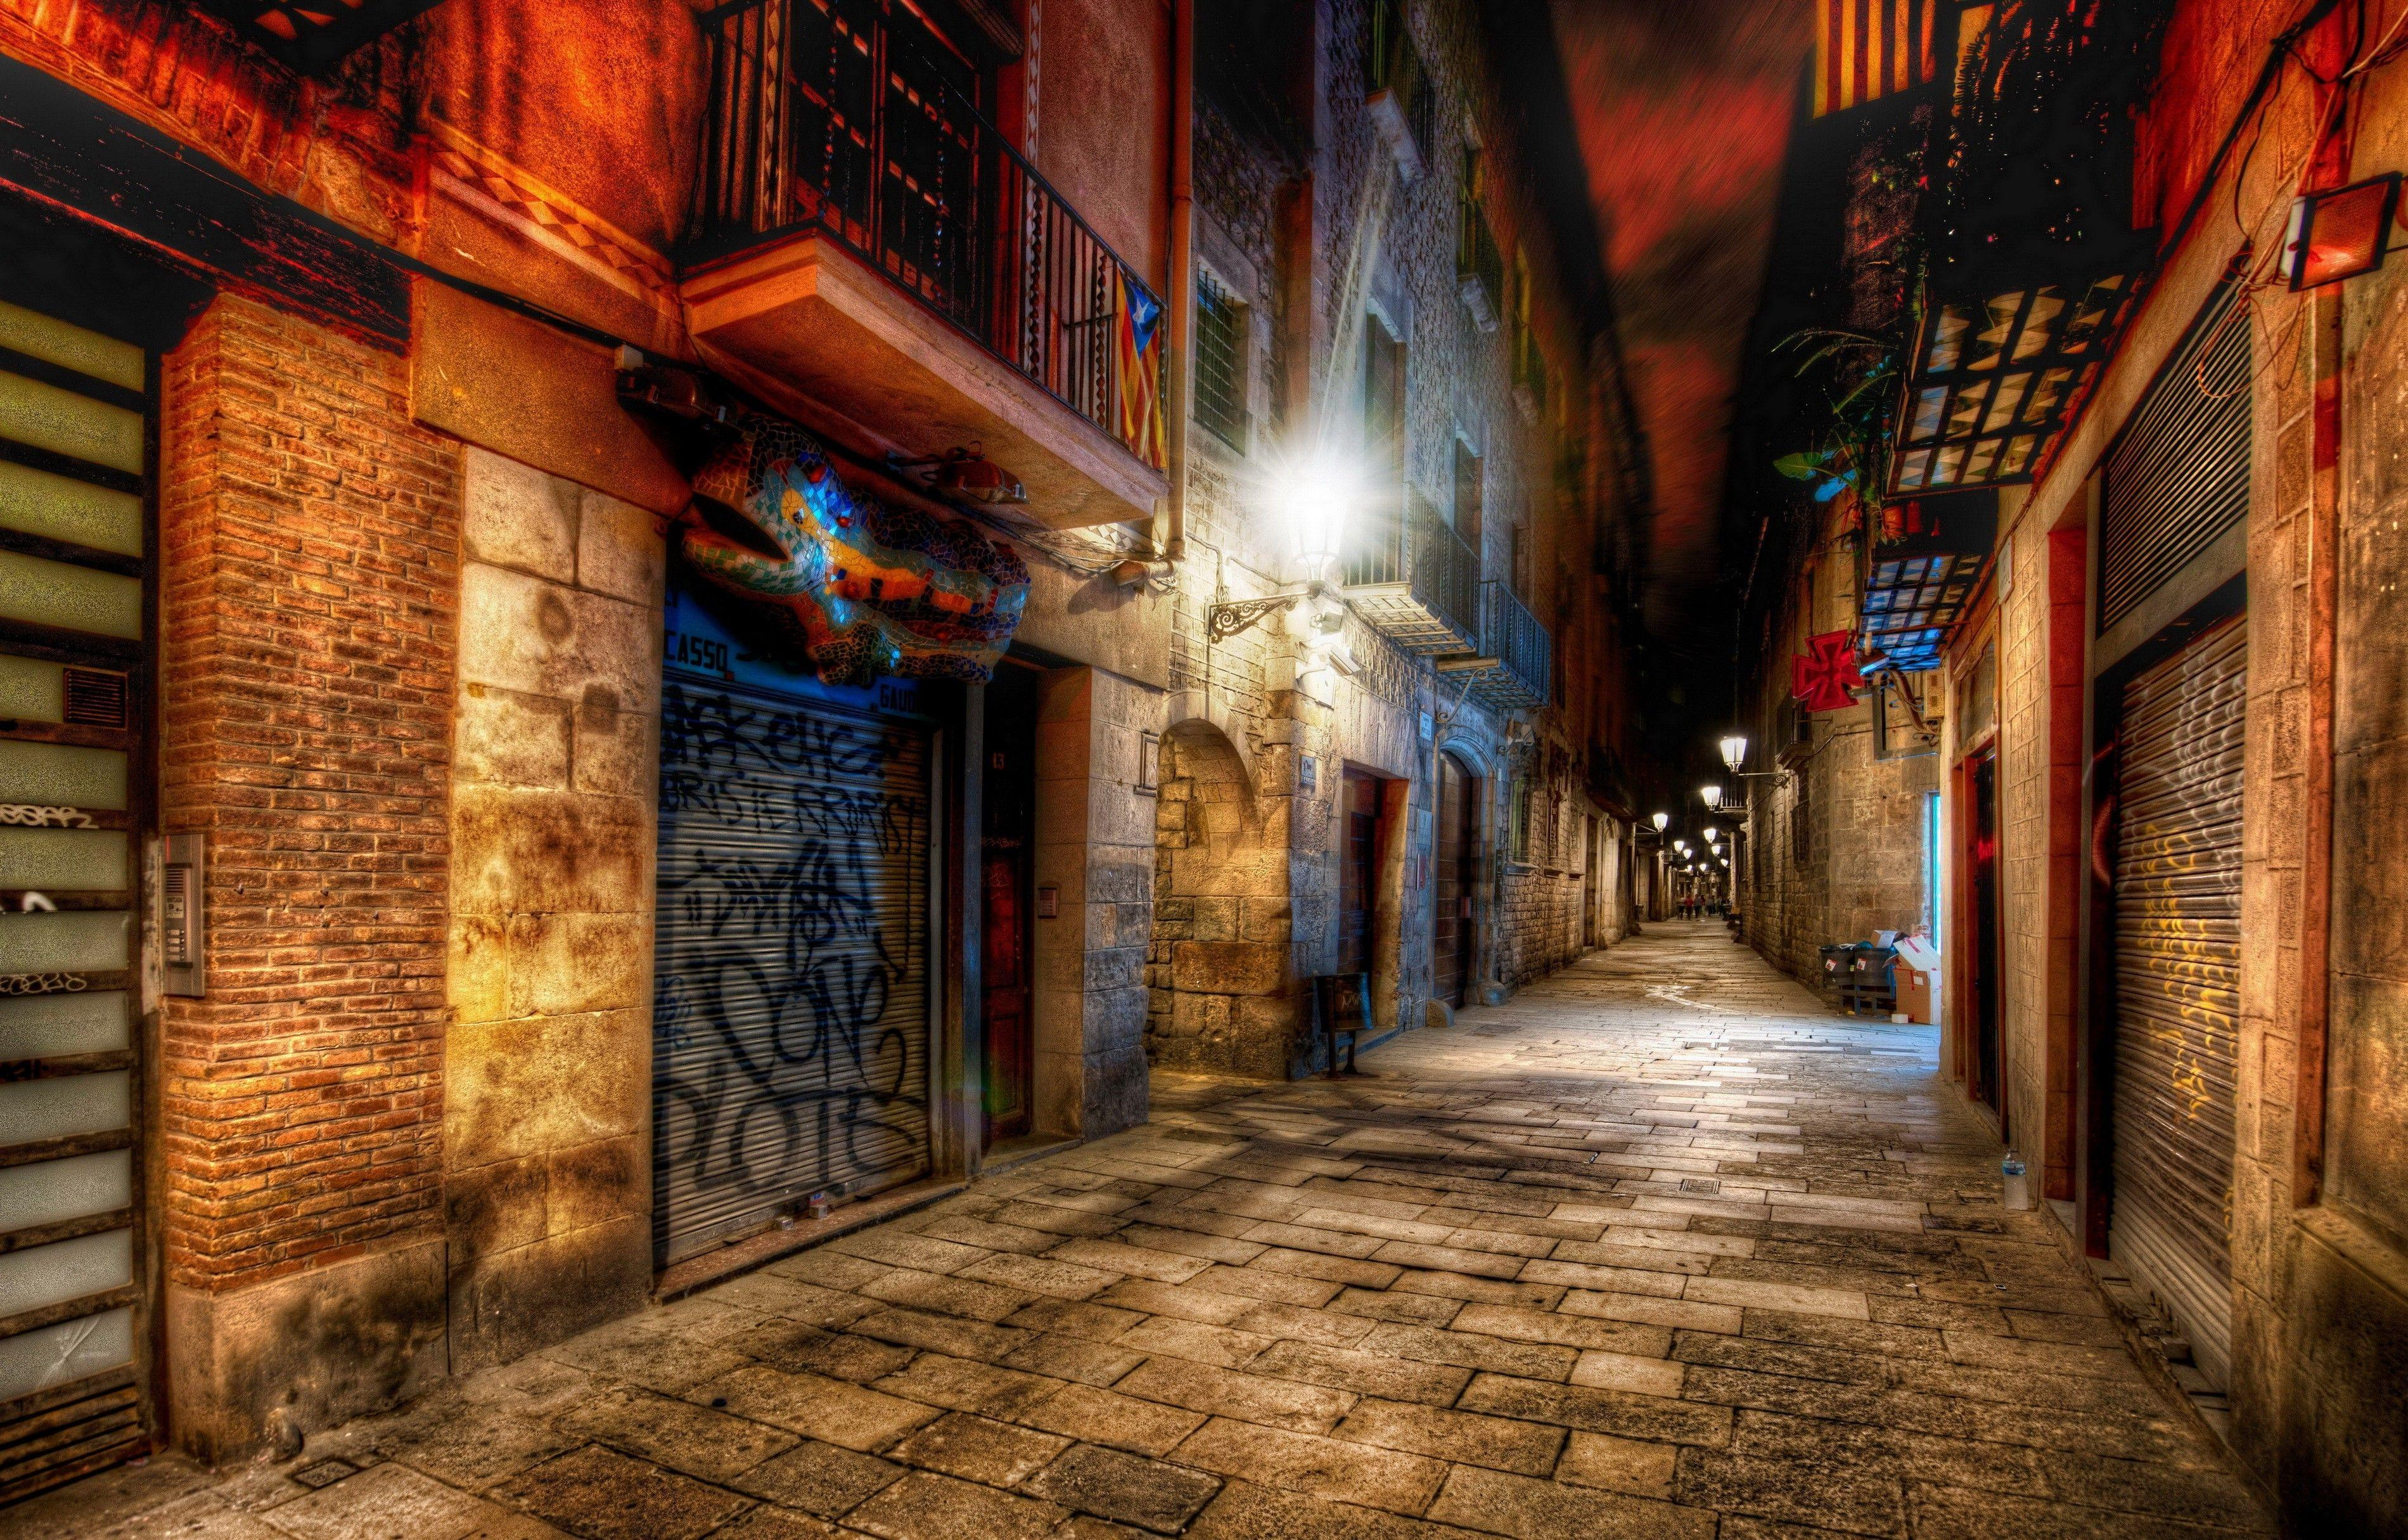 23 Barcelona HD Wallpapers | Backgrounds - Wallpaper Abyss